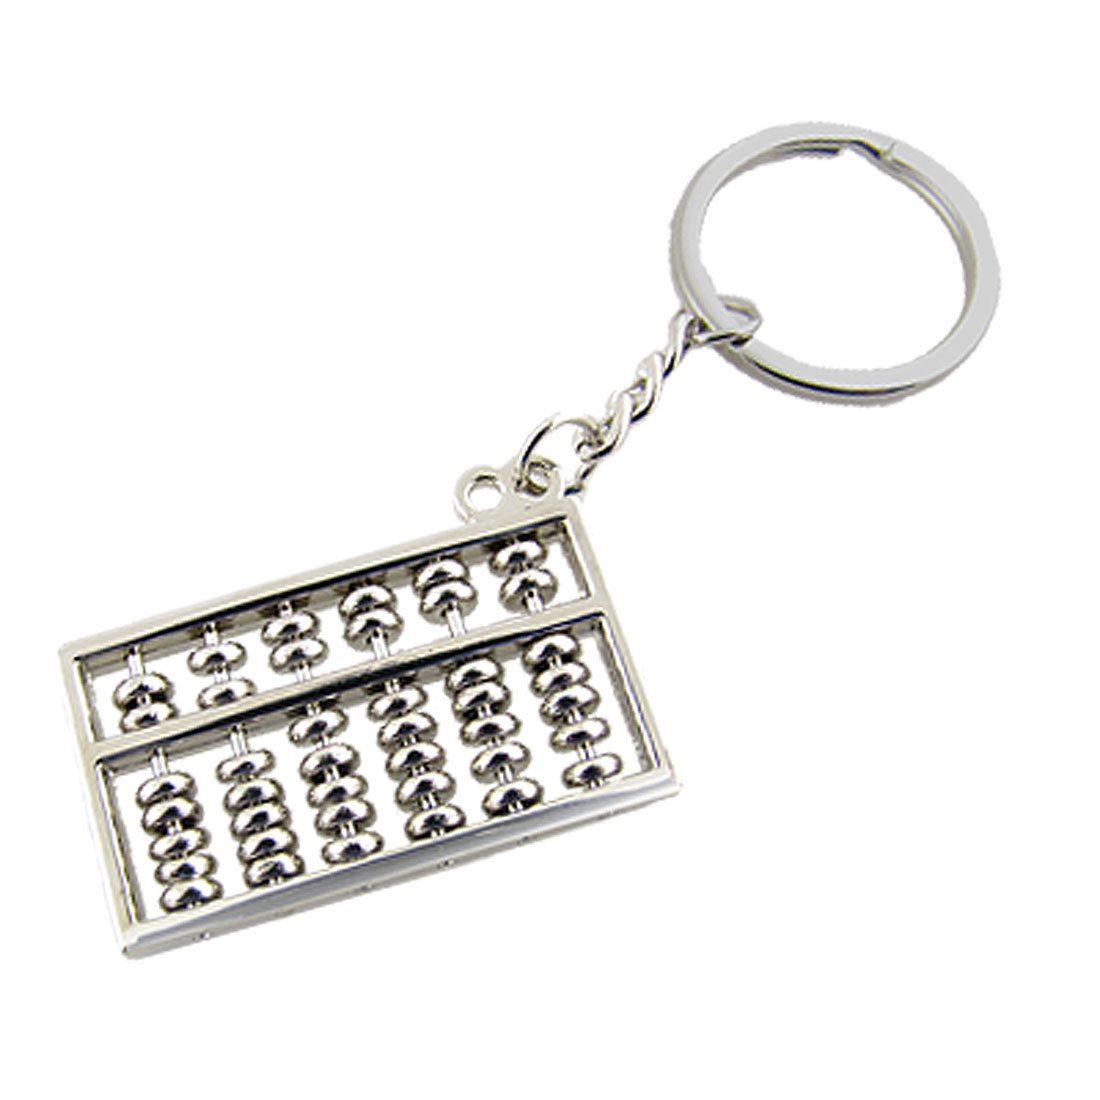 Silver Tone Metal Abacus Pendant Keyring Keychains